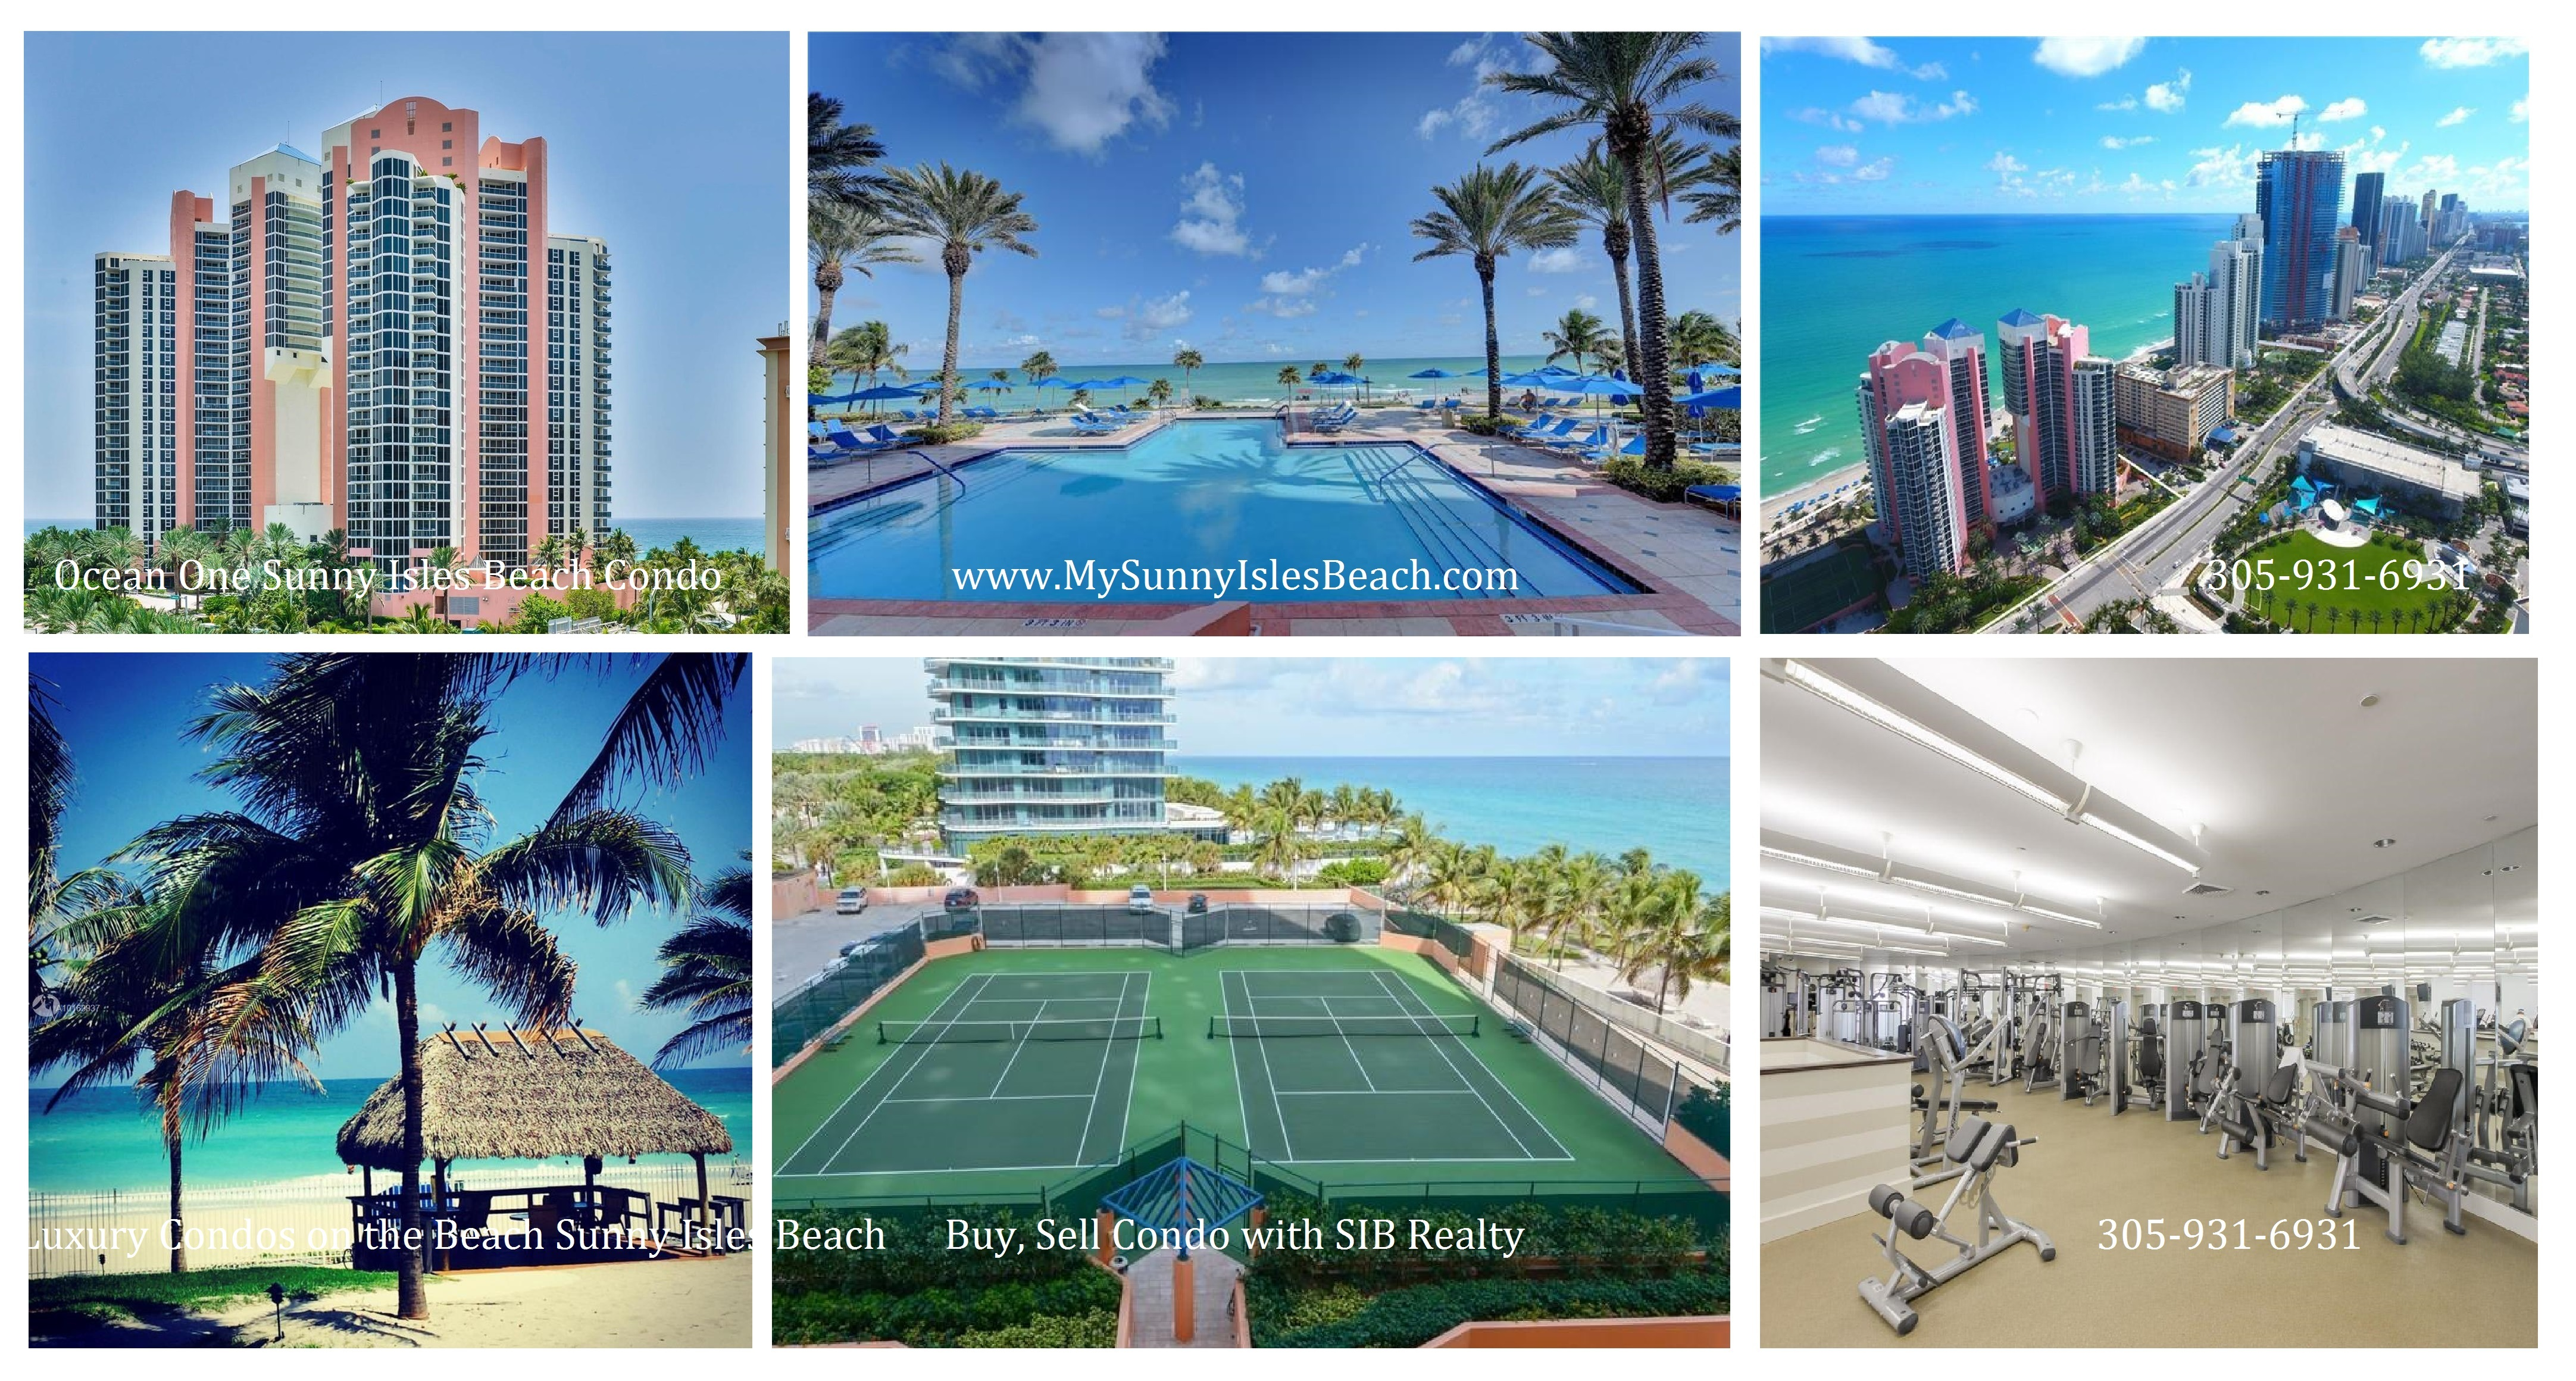 Ocean One Sunny Isles Beach Condo for Sale with SIB Realty